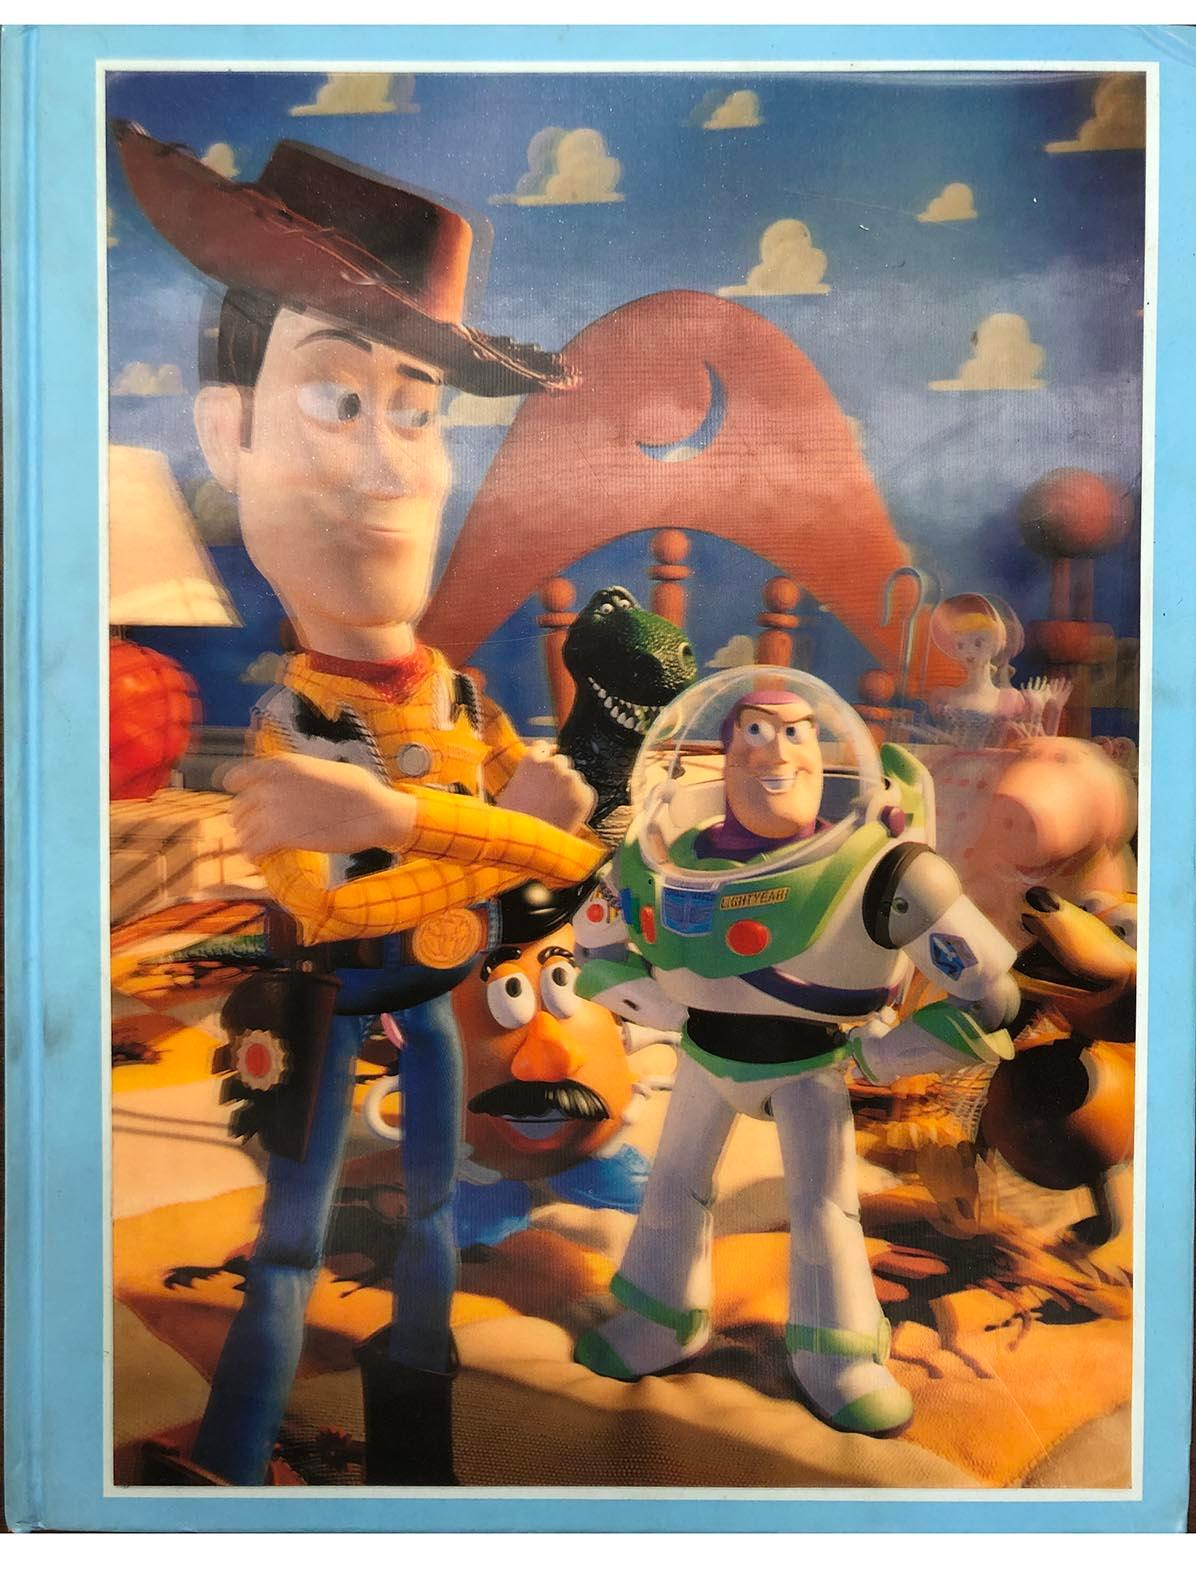 Toy Story hardcover coffee table book